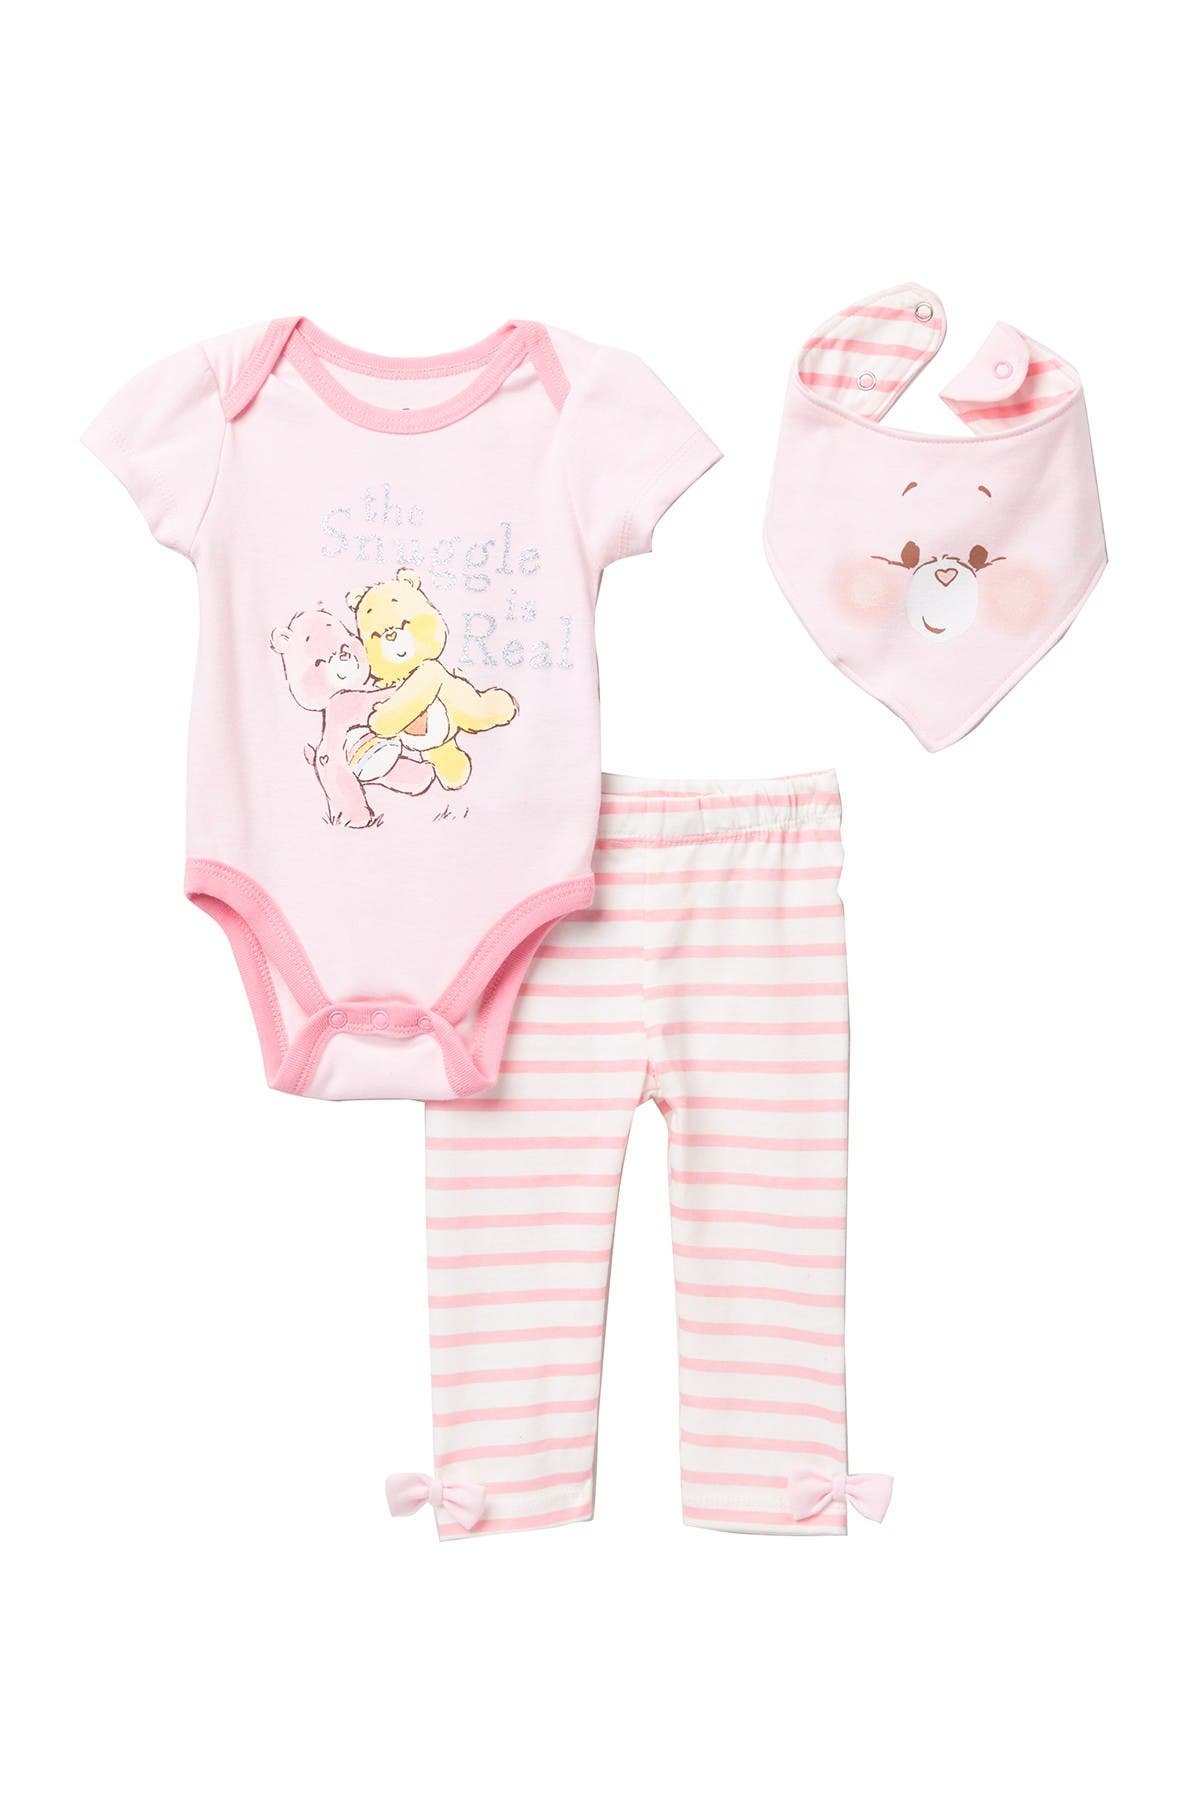 Image of HAPPY THREADS Care Bares 3-Piece Bodysuit Set